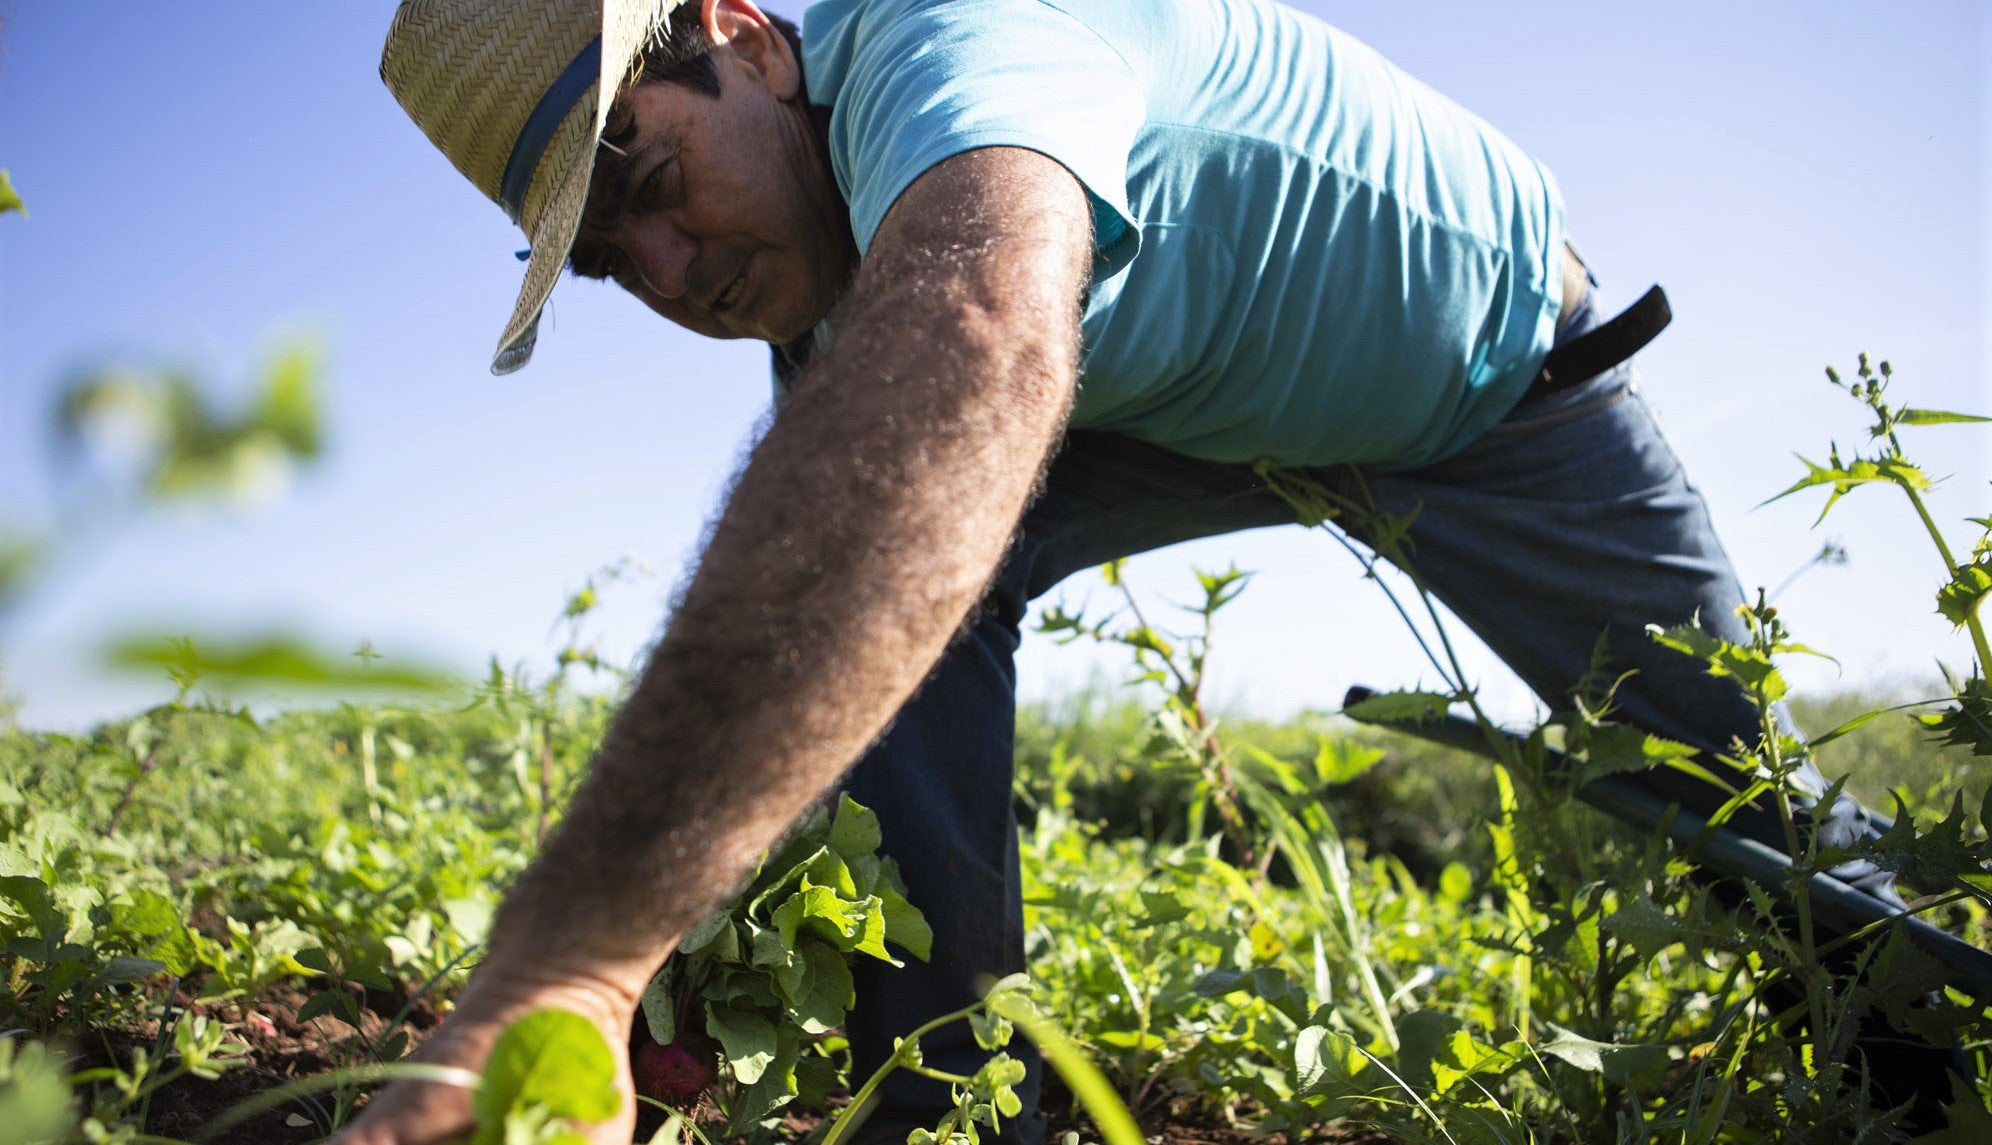 farmer working in field with hat on and sun on his back